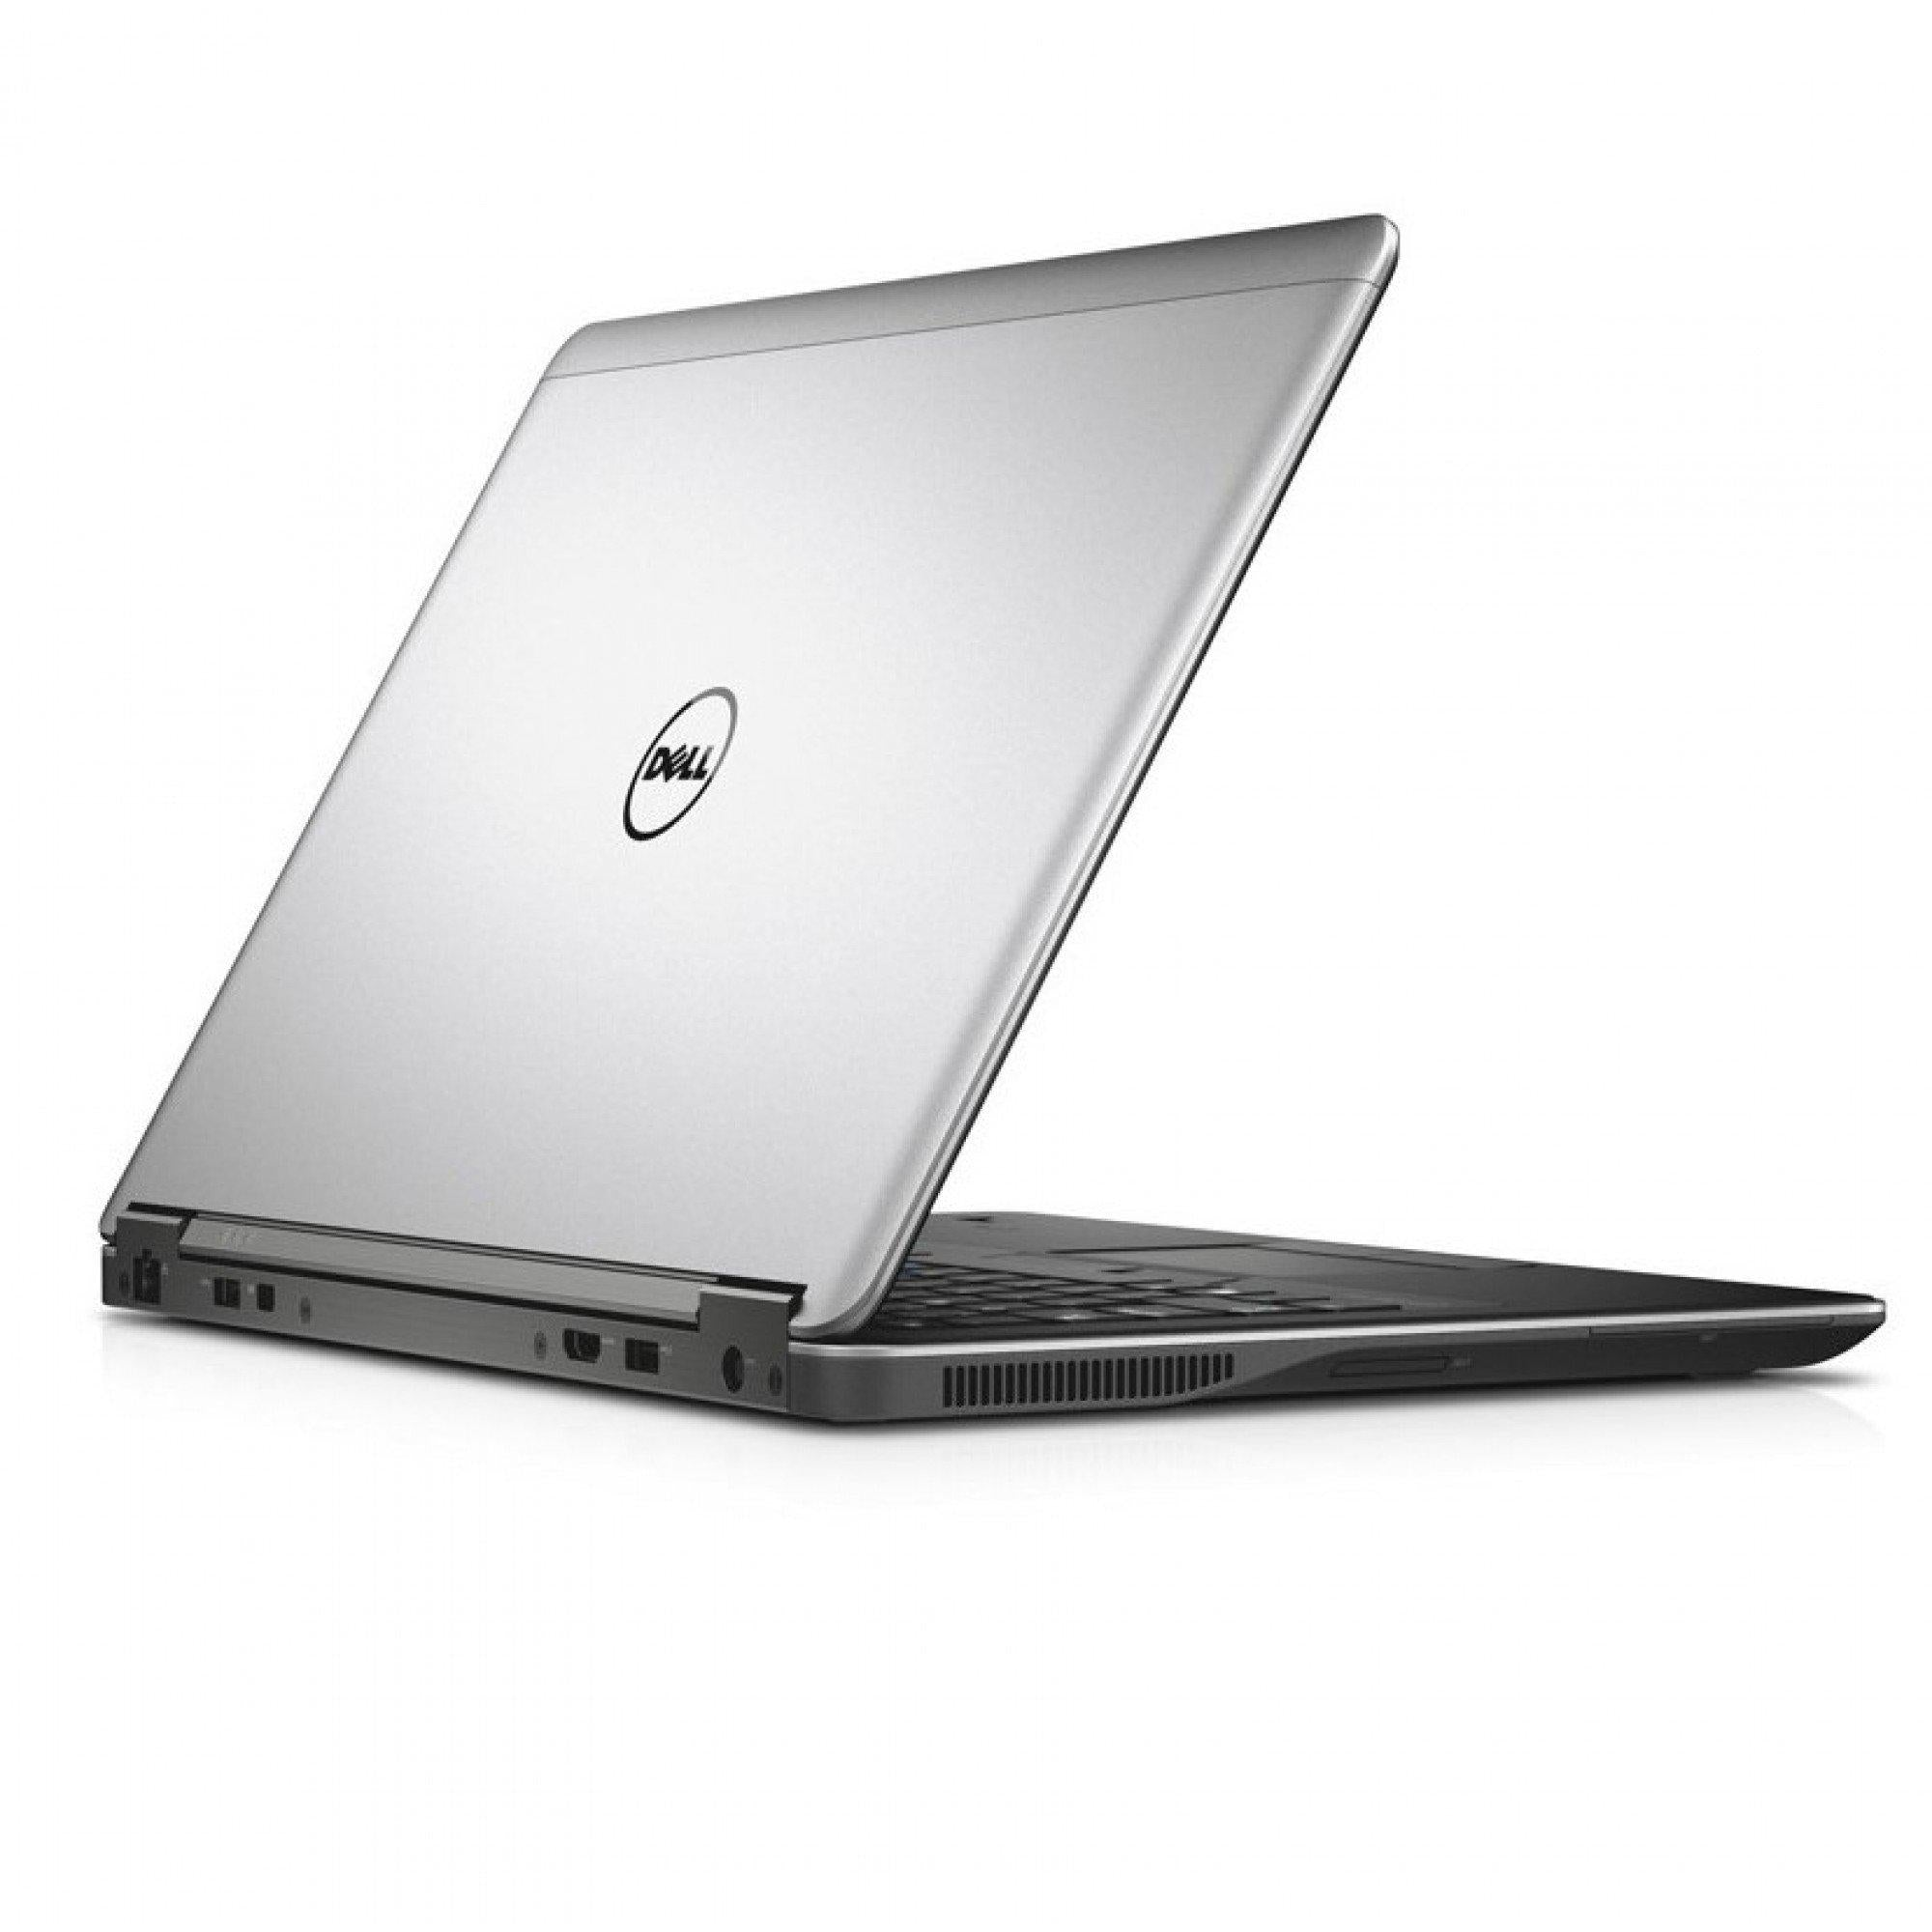 "Dell Latitude 14 7000 E7440 14"" Laptop Intel Core I5 1.9Ghz"